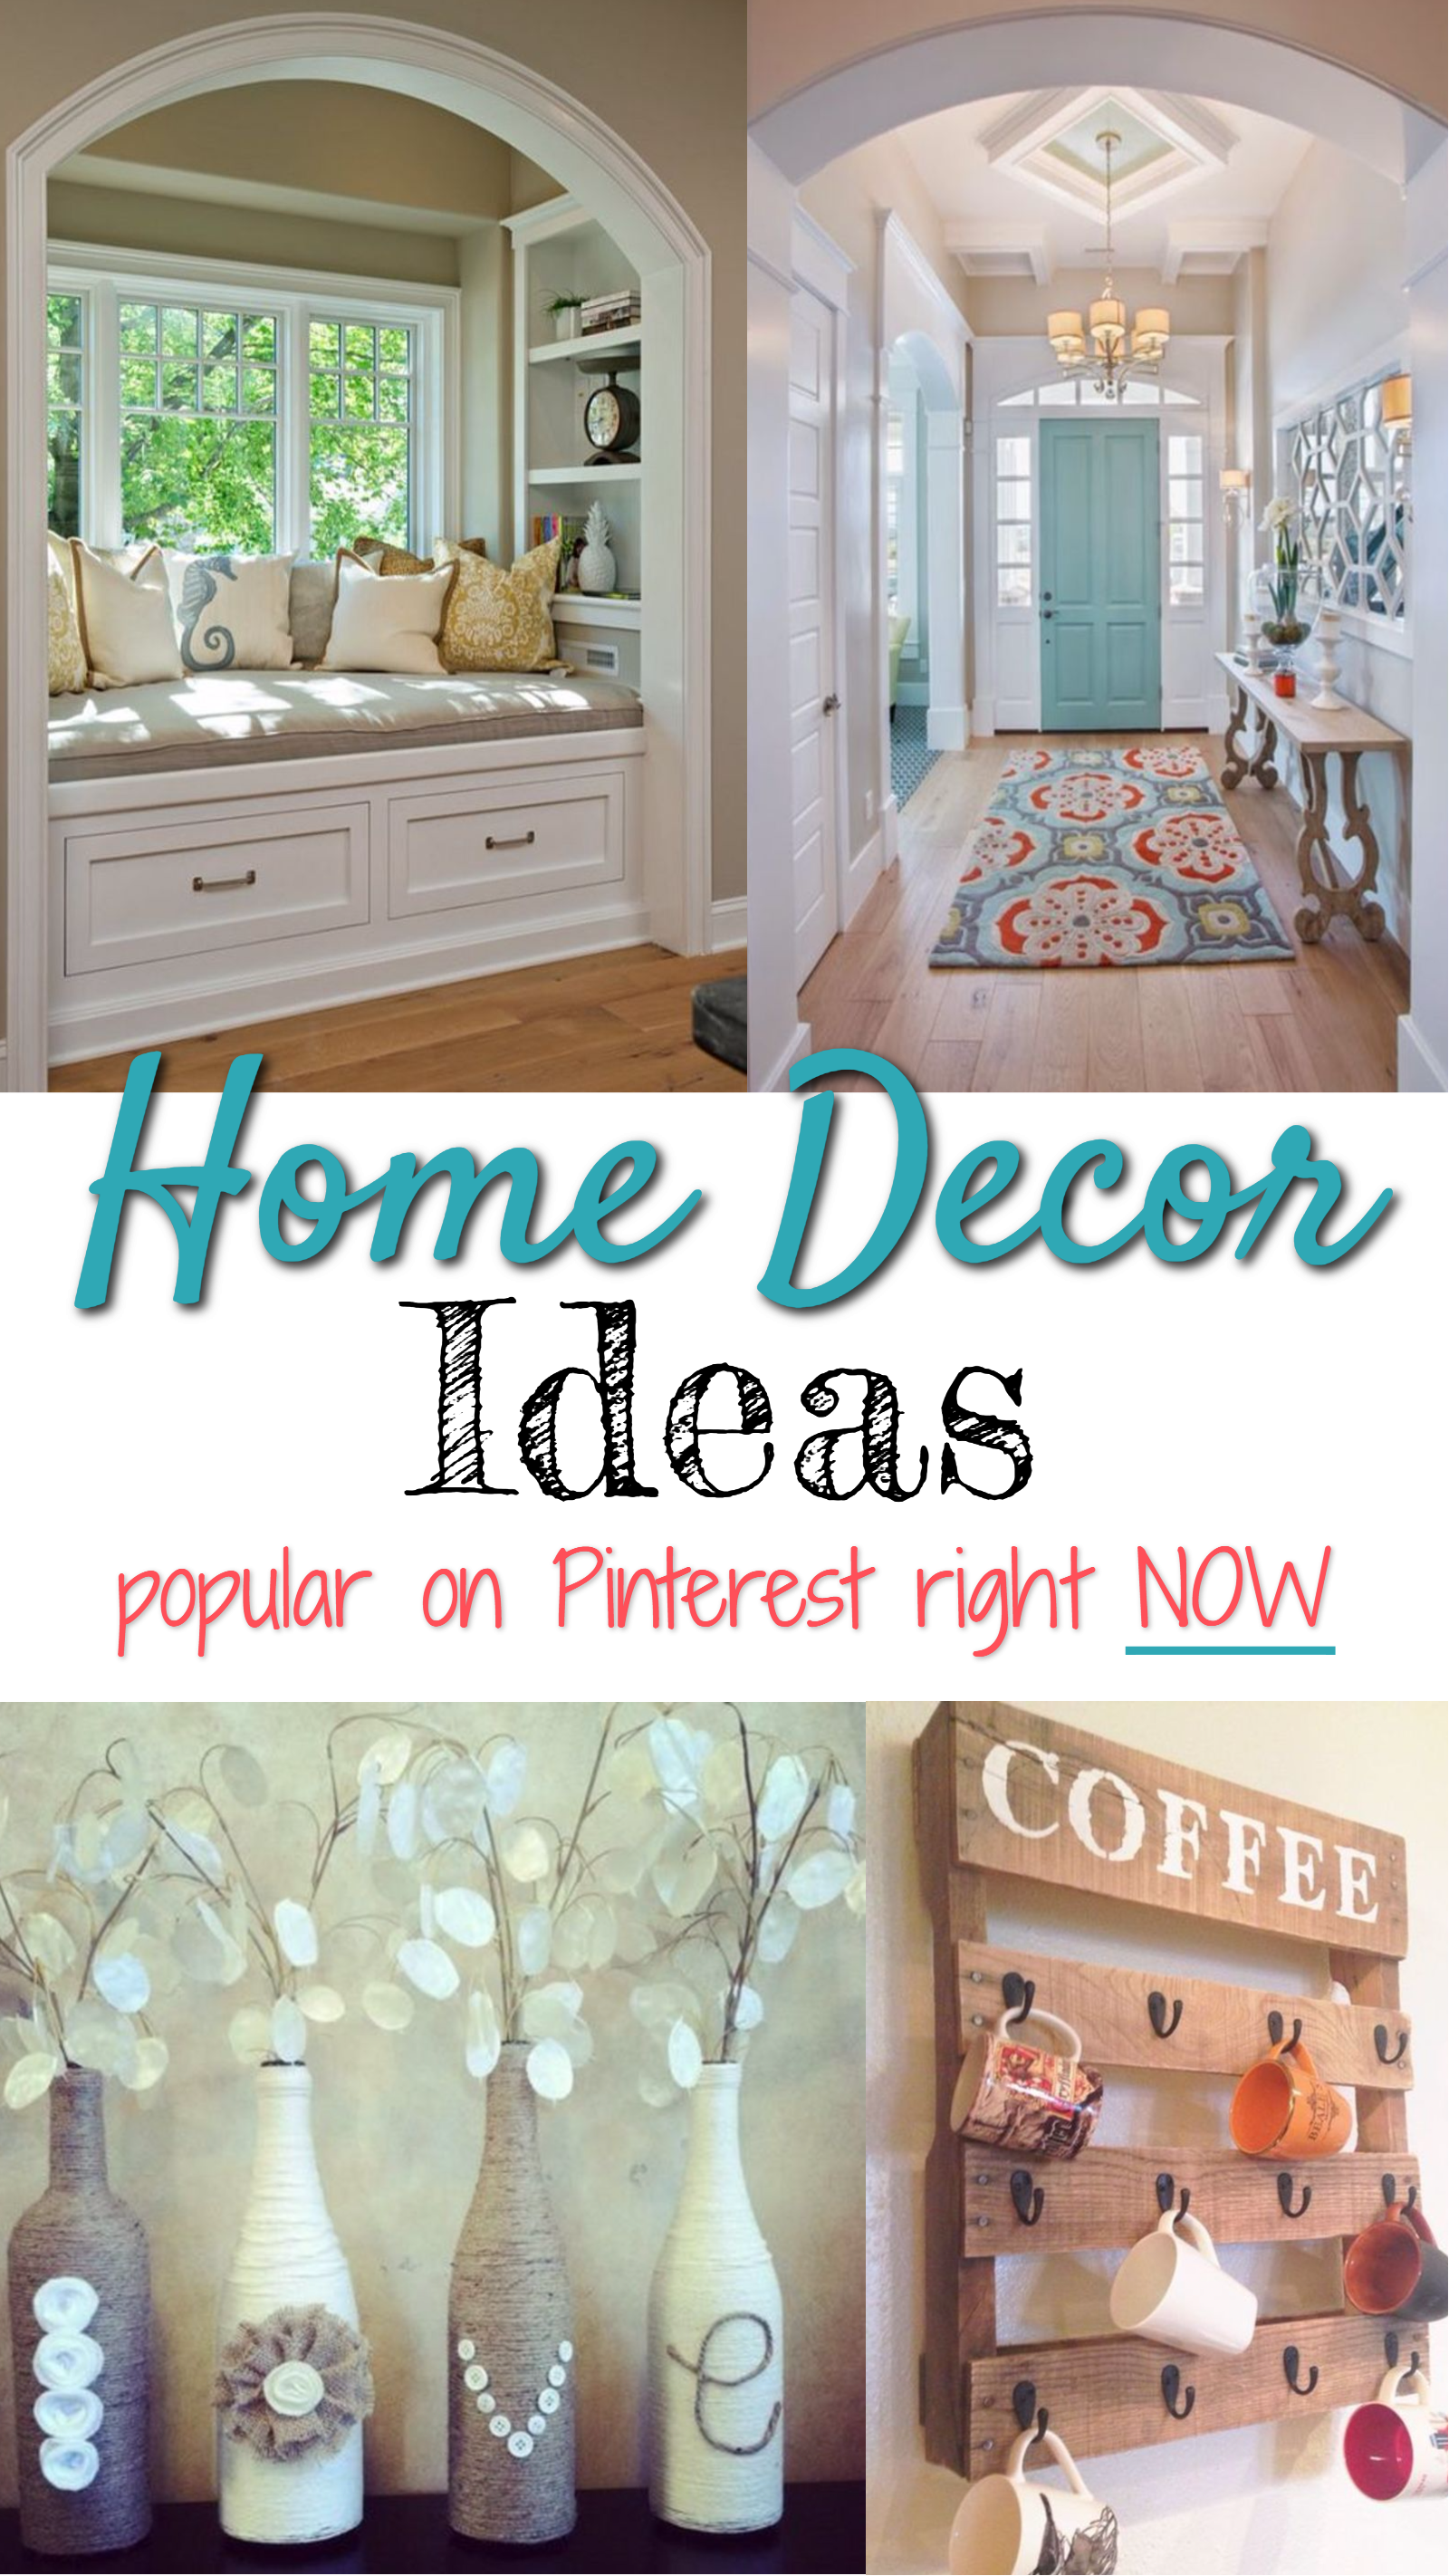 Pinterest blog ideas trending viral on pinterest today Home interior blogs